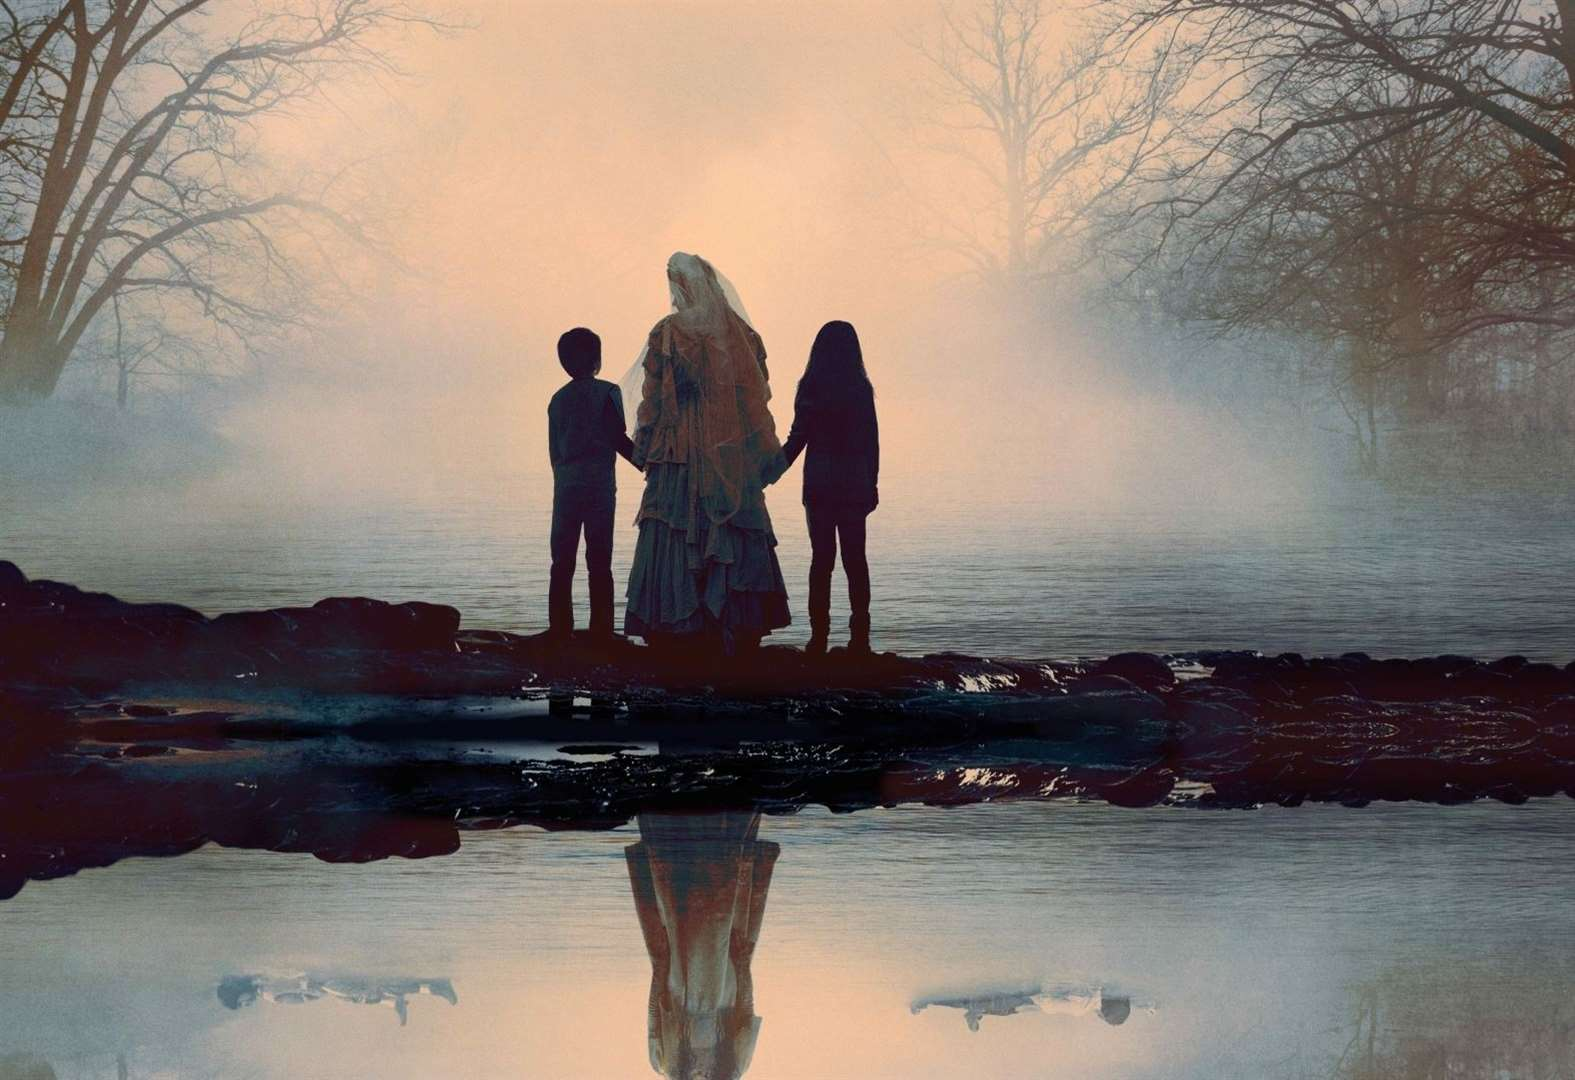 FILM REVIEW: The Curse of La Llorona